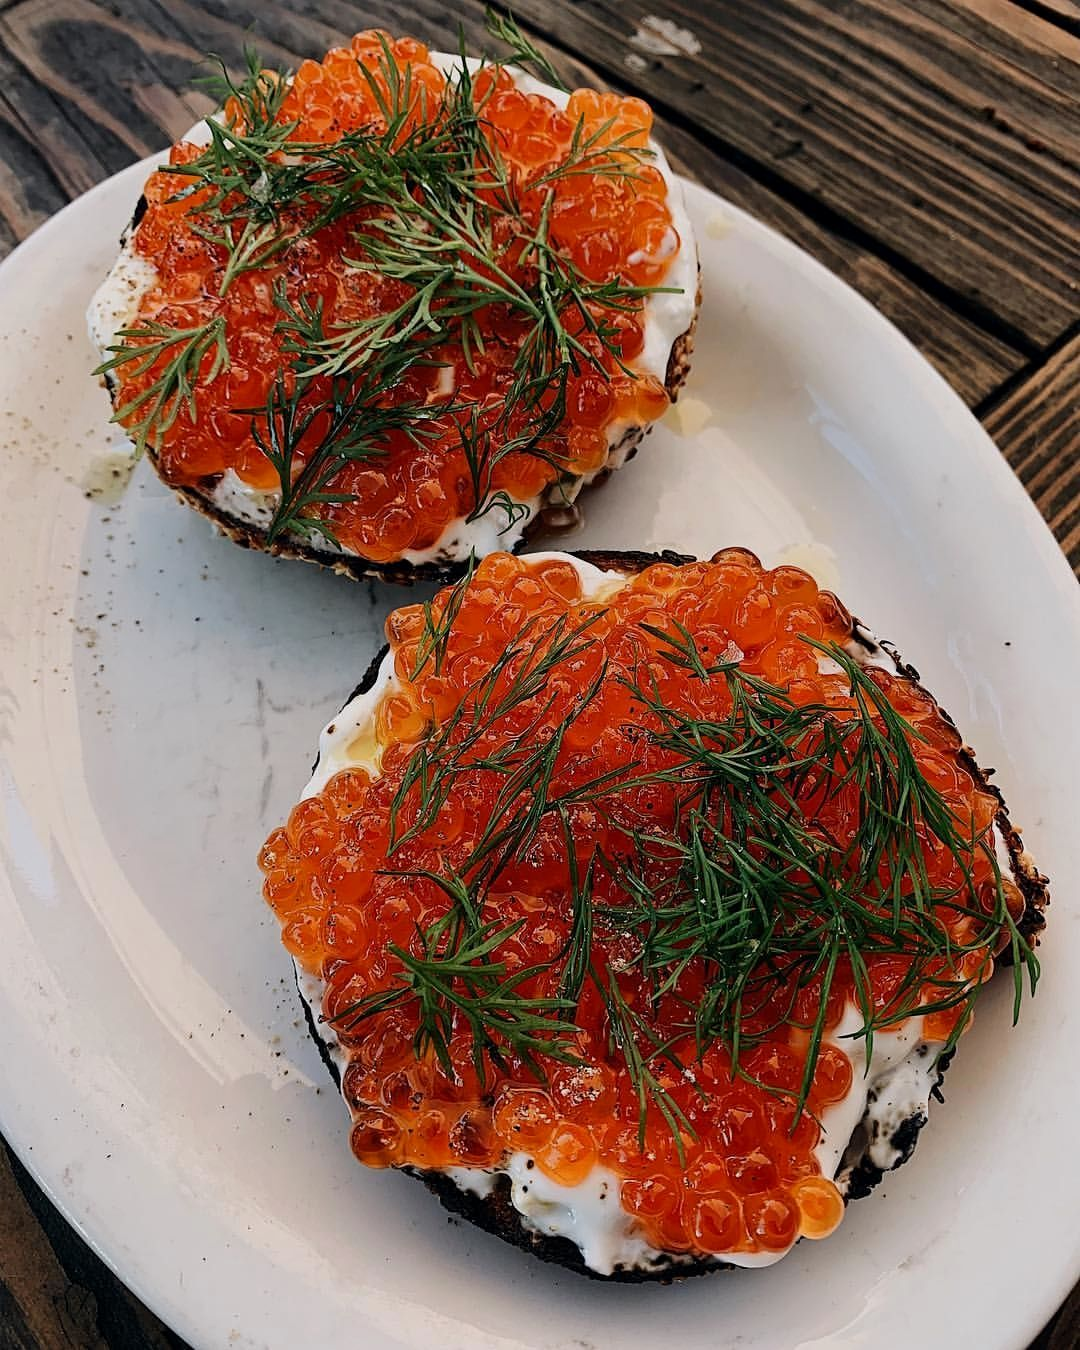 If You Visit La Make Sure You Go To Gjustabakery And Try These Salmon Roe Bagels Instant Pot Recipes Food Homemade Recipes